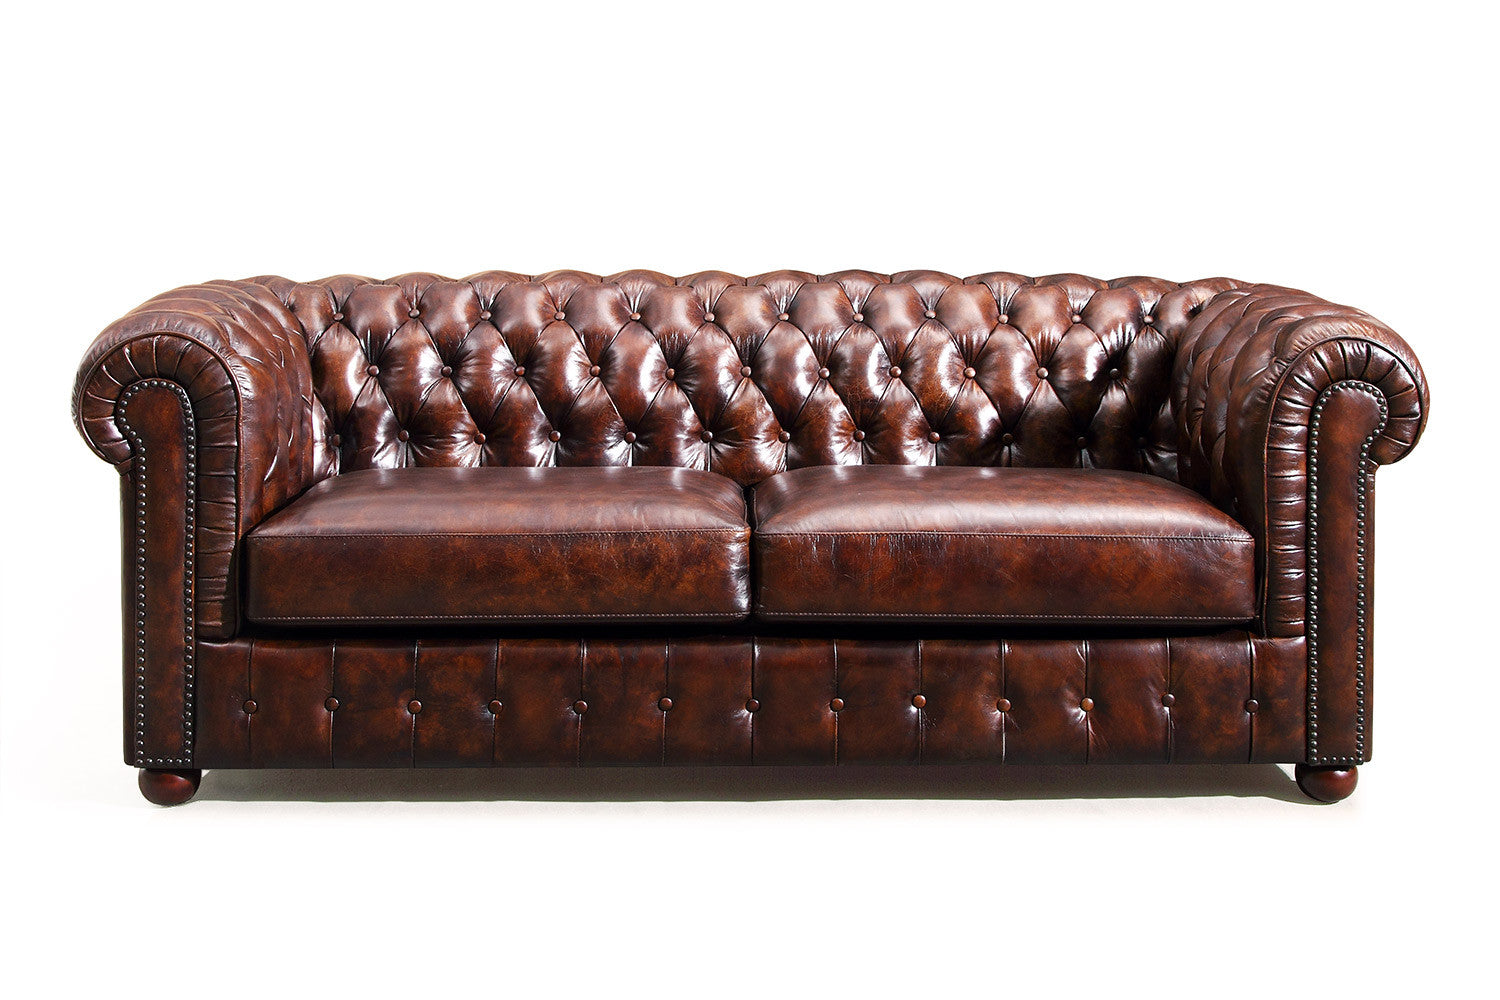 Charmant Chesterfield Leather Sofa Original RM 95